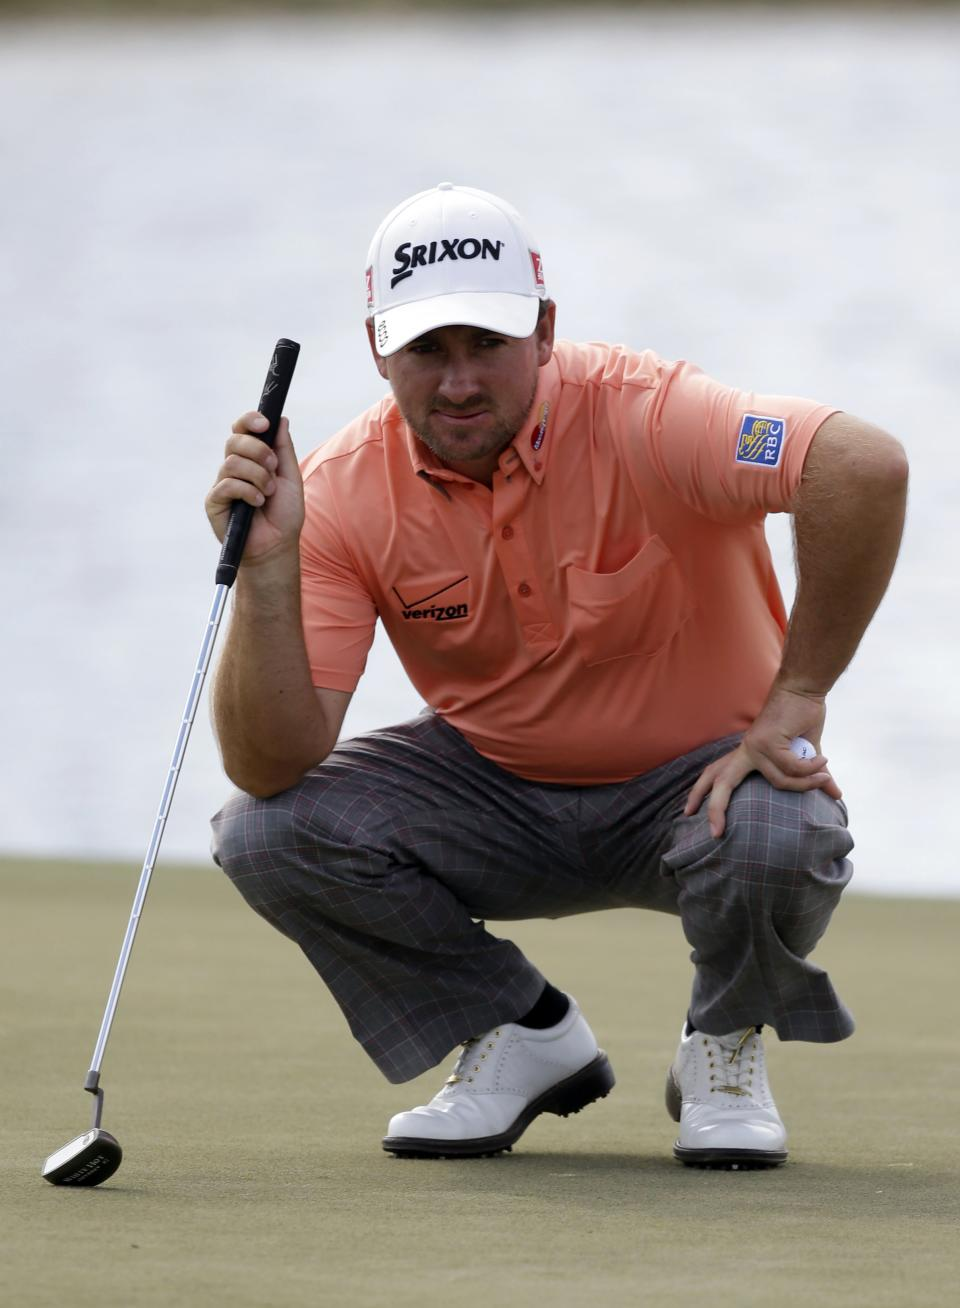 Graeme McDowell, of Northern Ireland, looks at his shot on the eighth green during the third round of the Cadillac Championship golf tournament on Sunday, March 10, 2013, in Doral, Fla. (AP Photo/Wilfredo Lee)